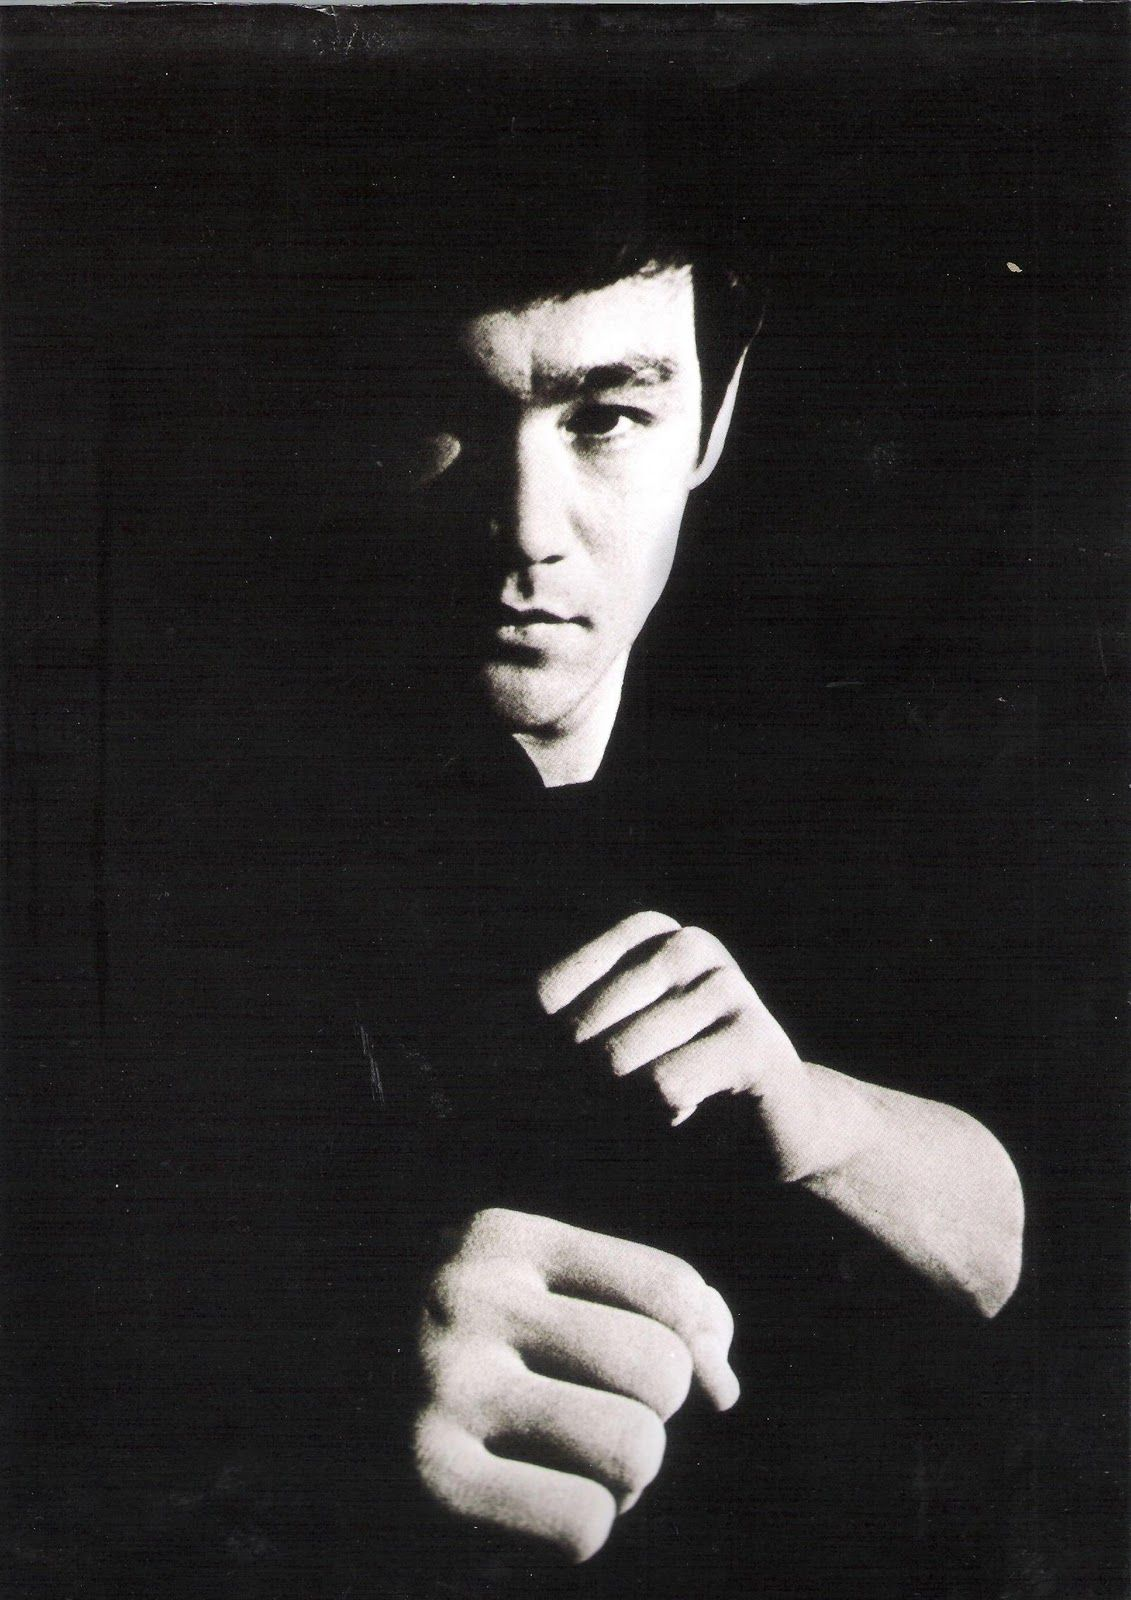 Bruce Lee Wallpaper Bruce lee, Wallpaper, Cover wallpaper